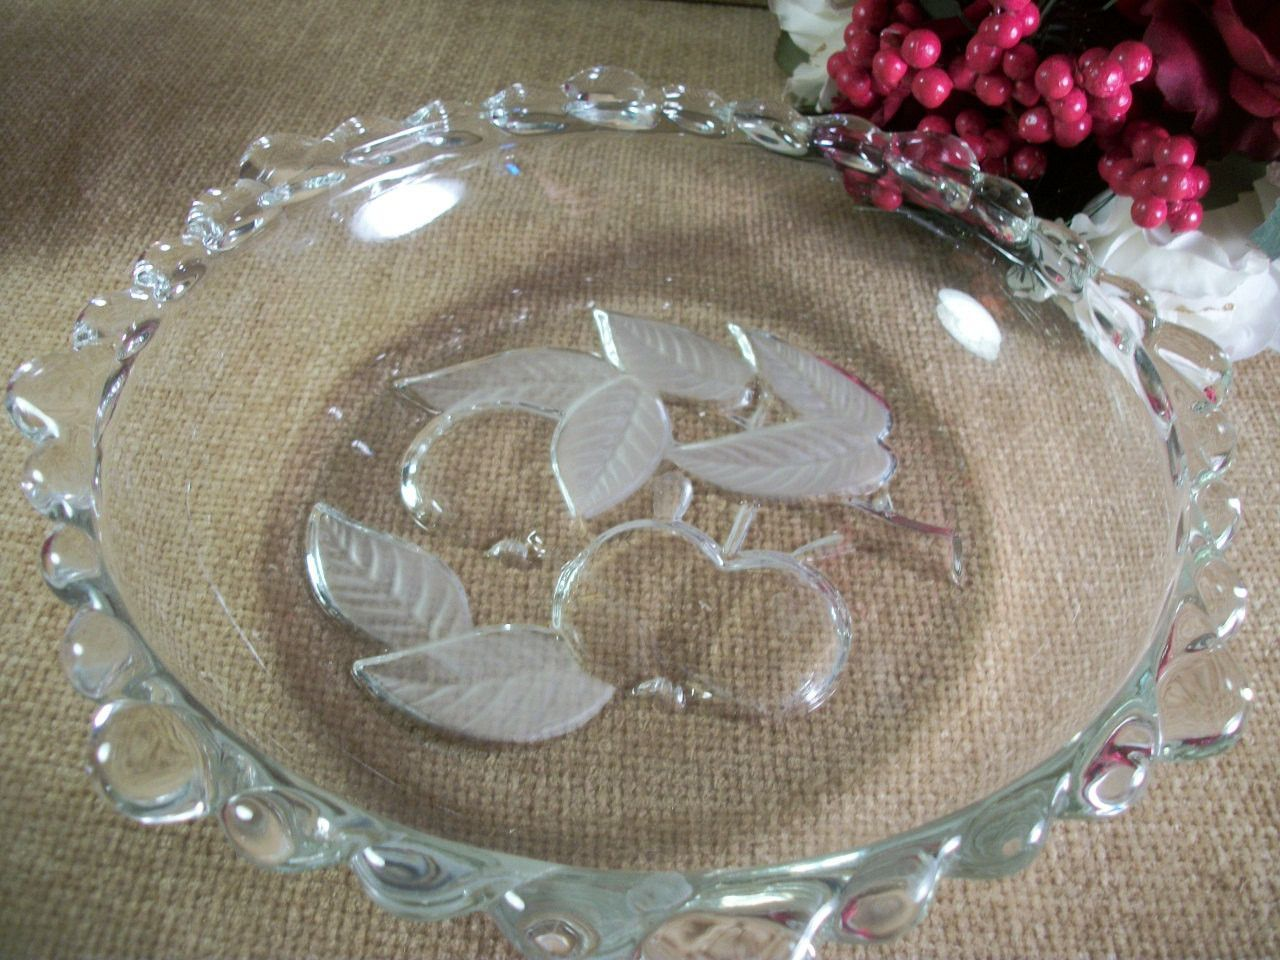 Clear Pressed Glass Bowl Scalloped Edge Deep Dish Cherry Design Fruit Bowl Serving Dish Vintage 1970's Entertaining Tableware Centerpiece